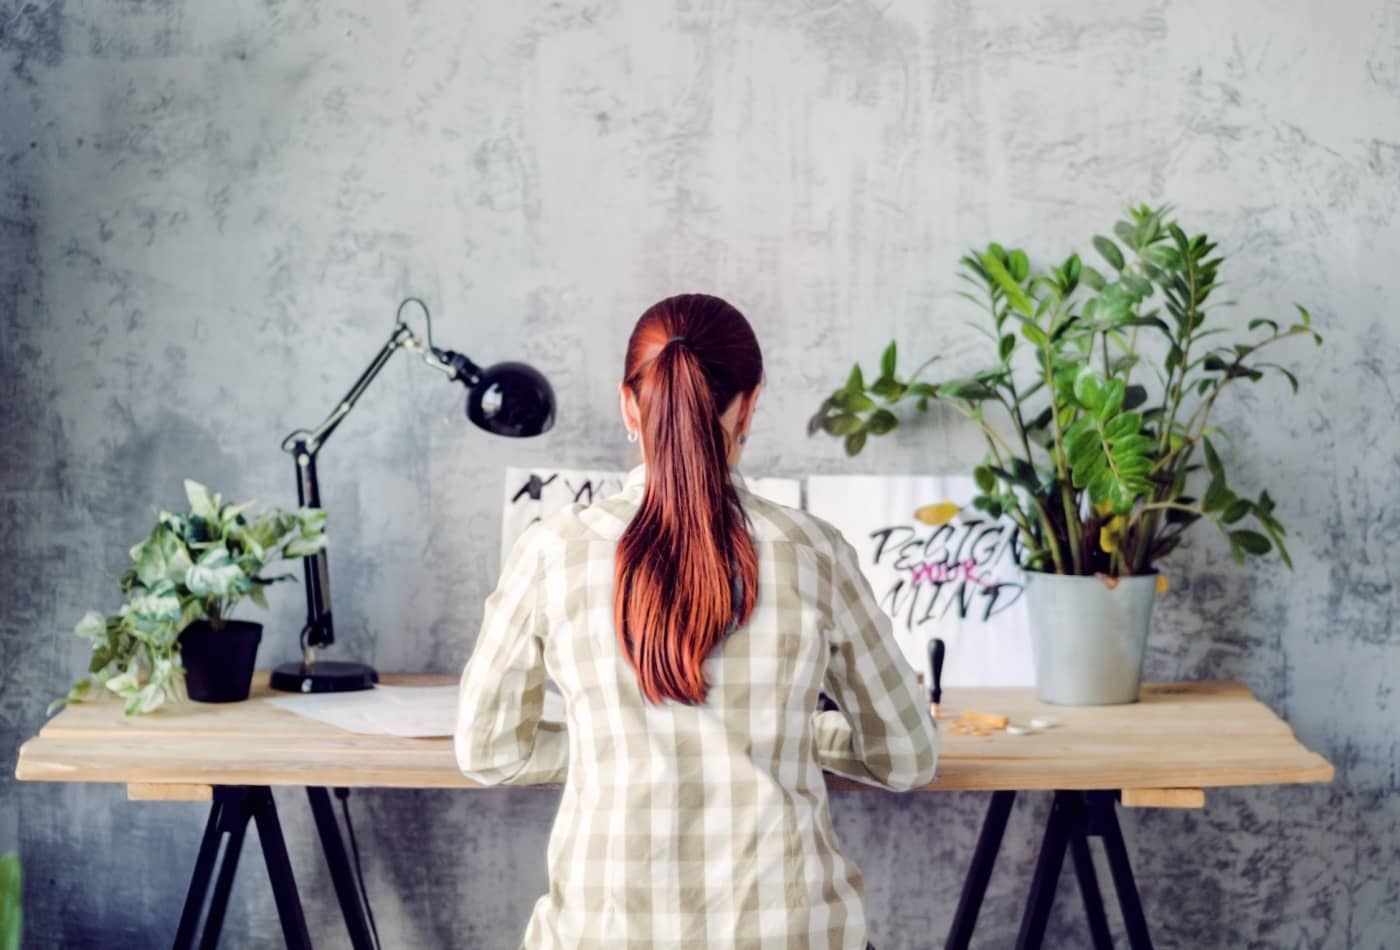 Anxiety And Work looking at desk plant for three minutes decreases stress